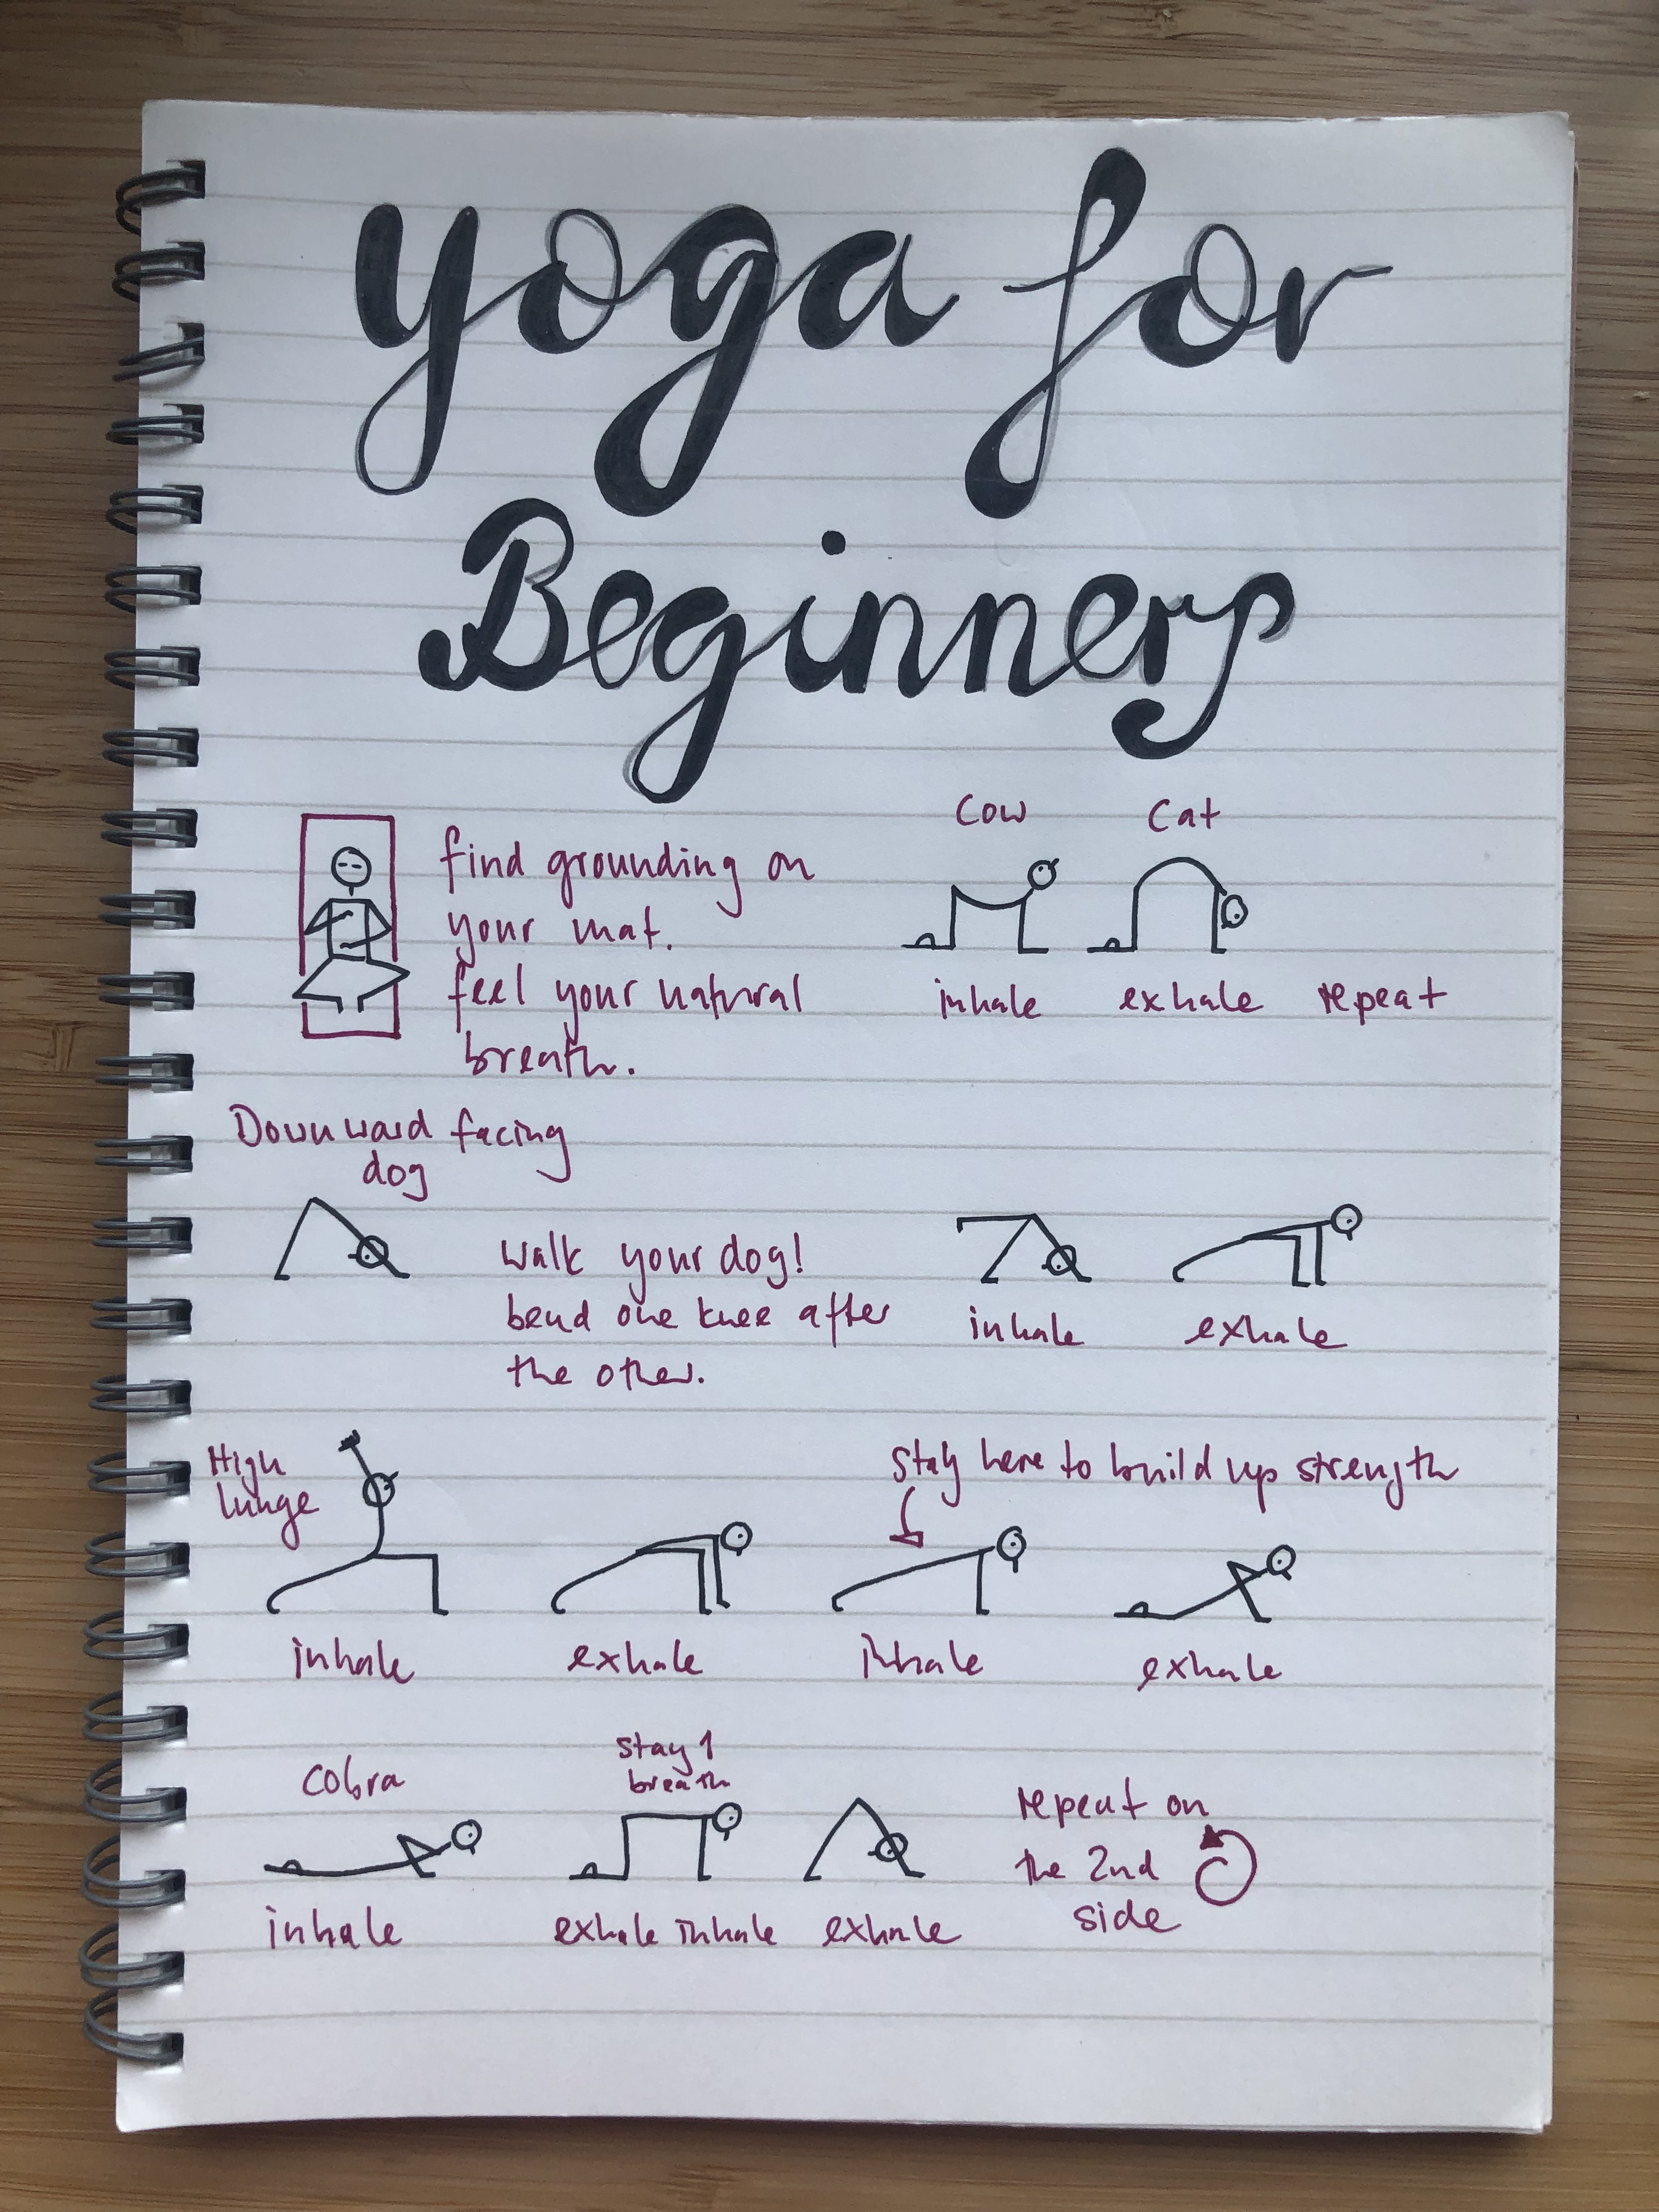 A simple yoga flow for beginners.